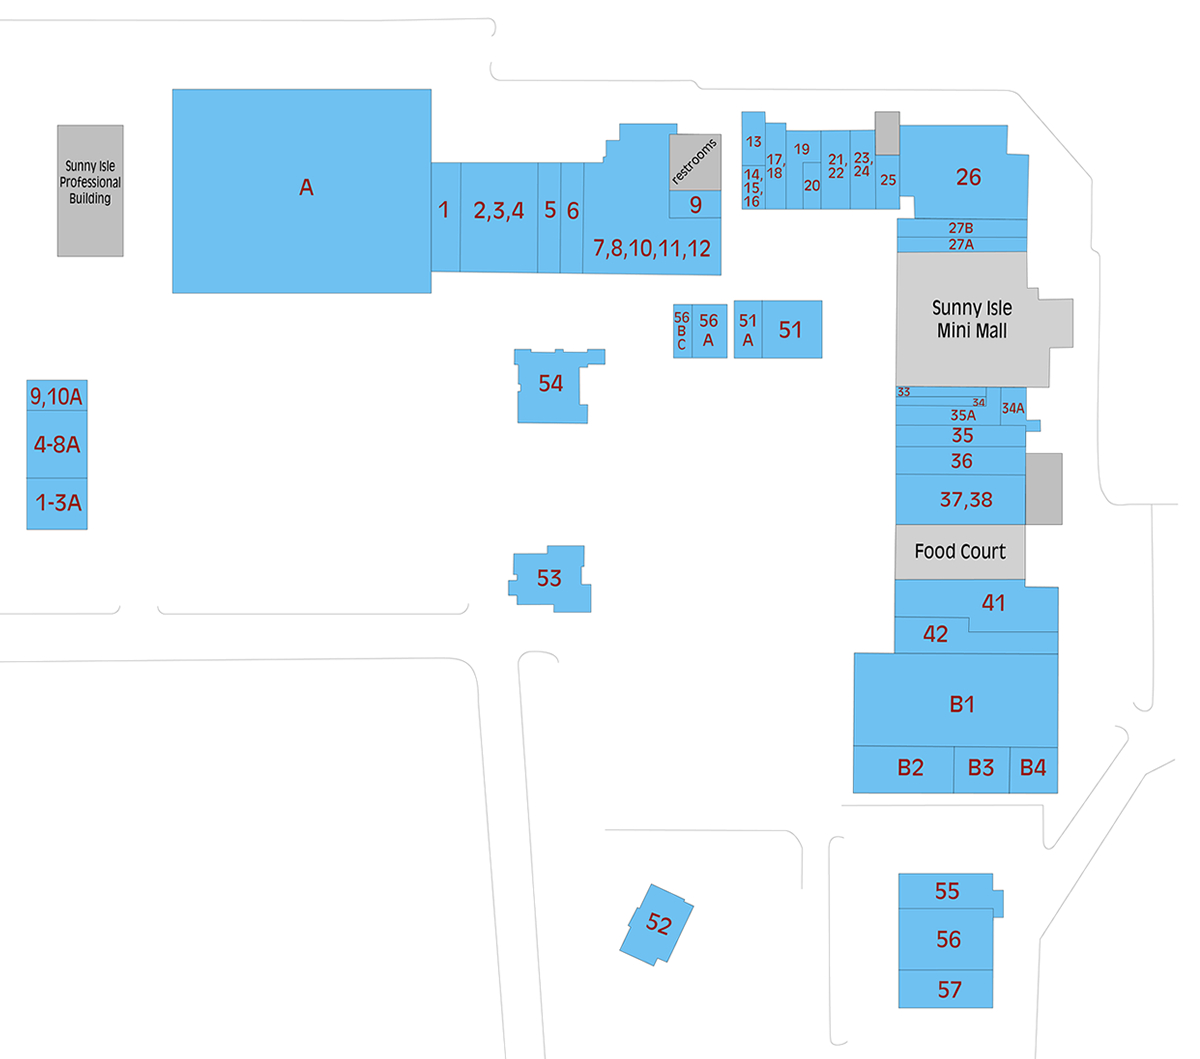 Map - Sunny Isle Shopping Center - Sunny Isles Florida Map